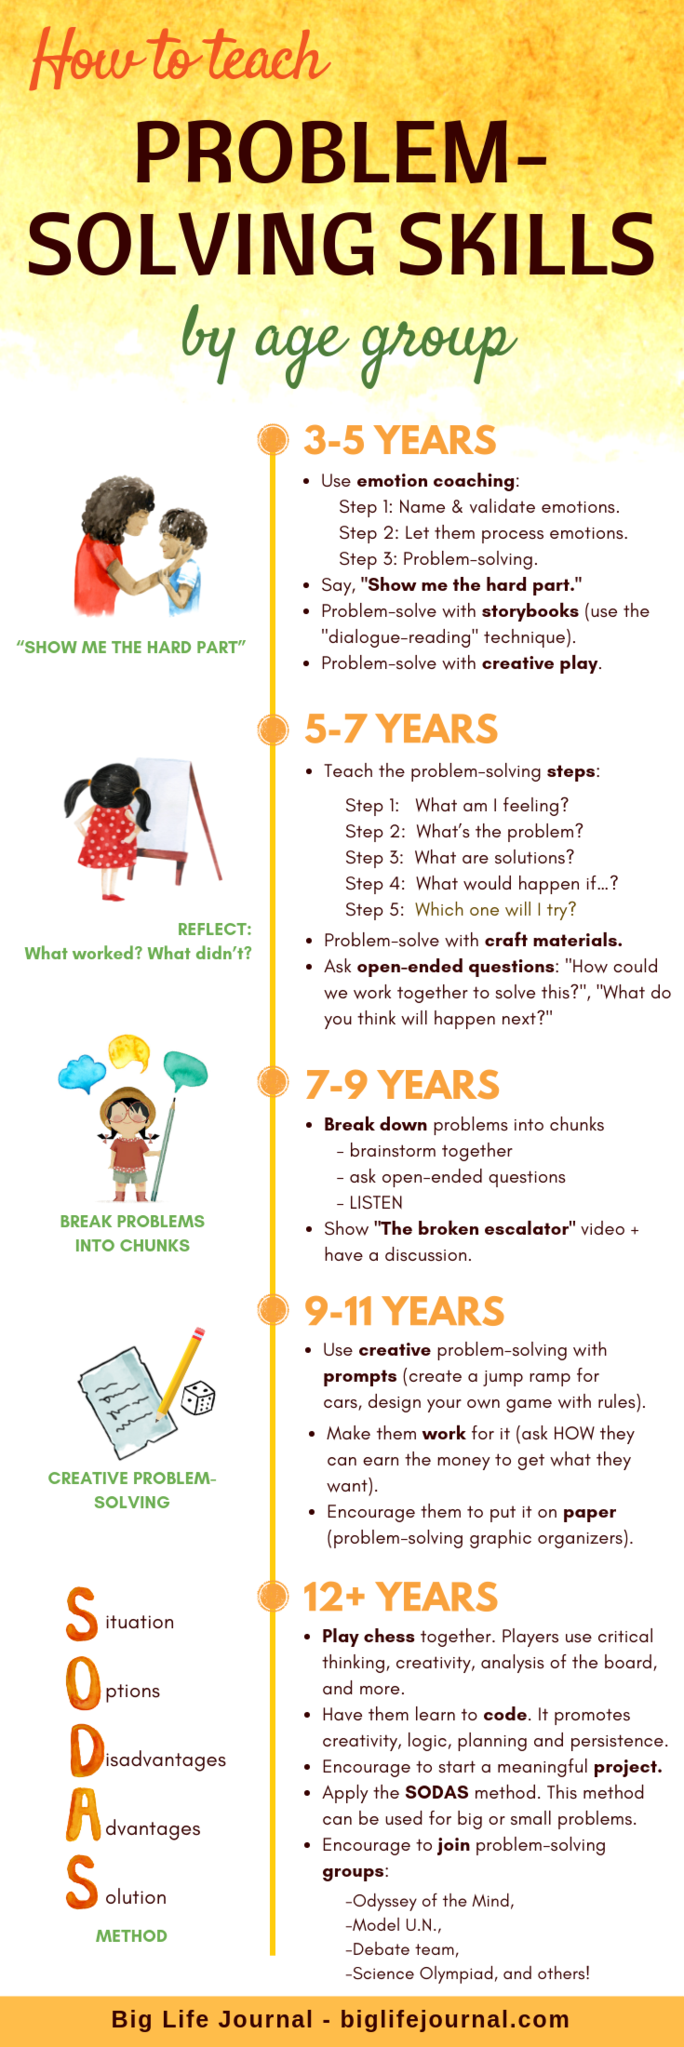 How to teach problemsolving skills to kids ages baby love